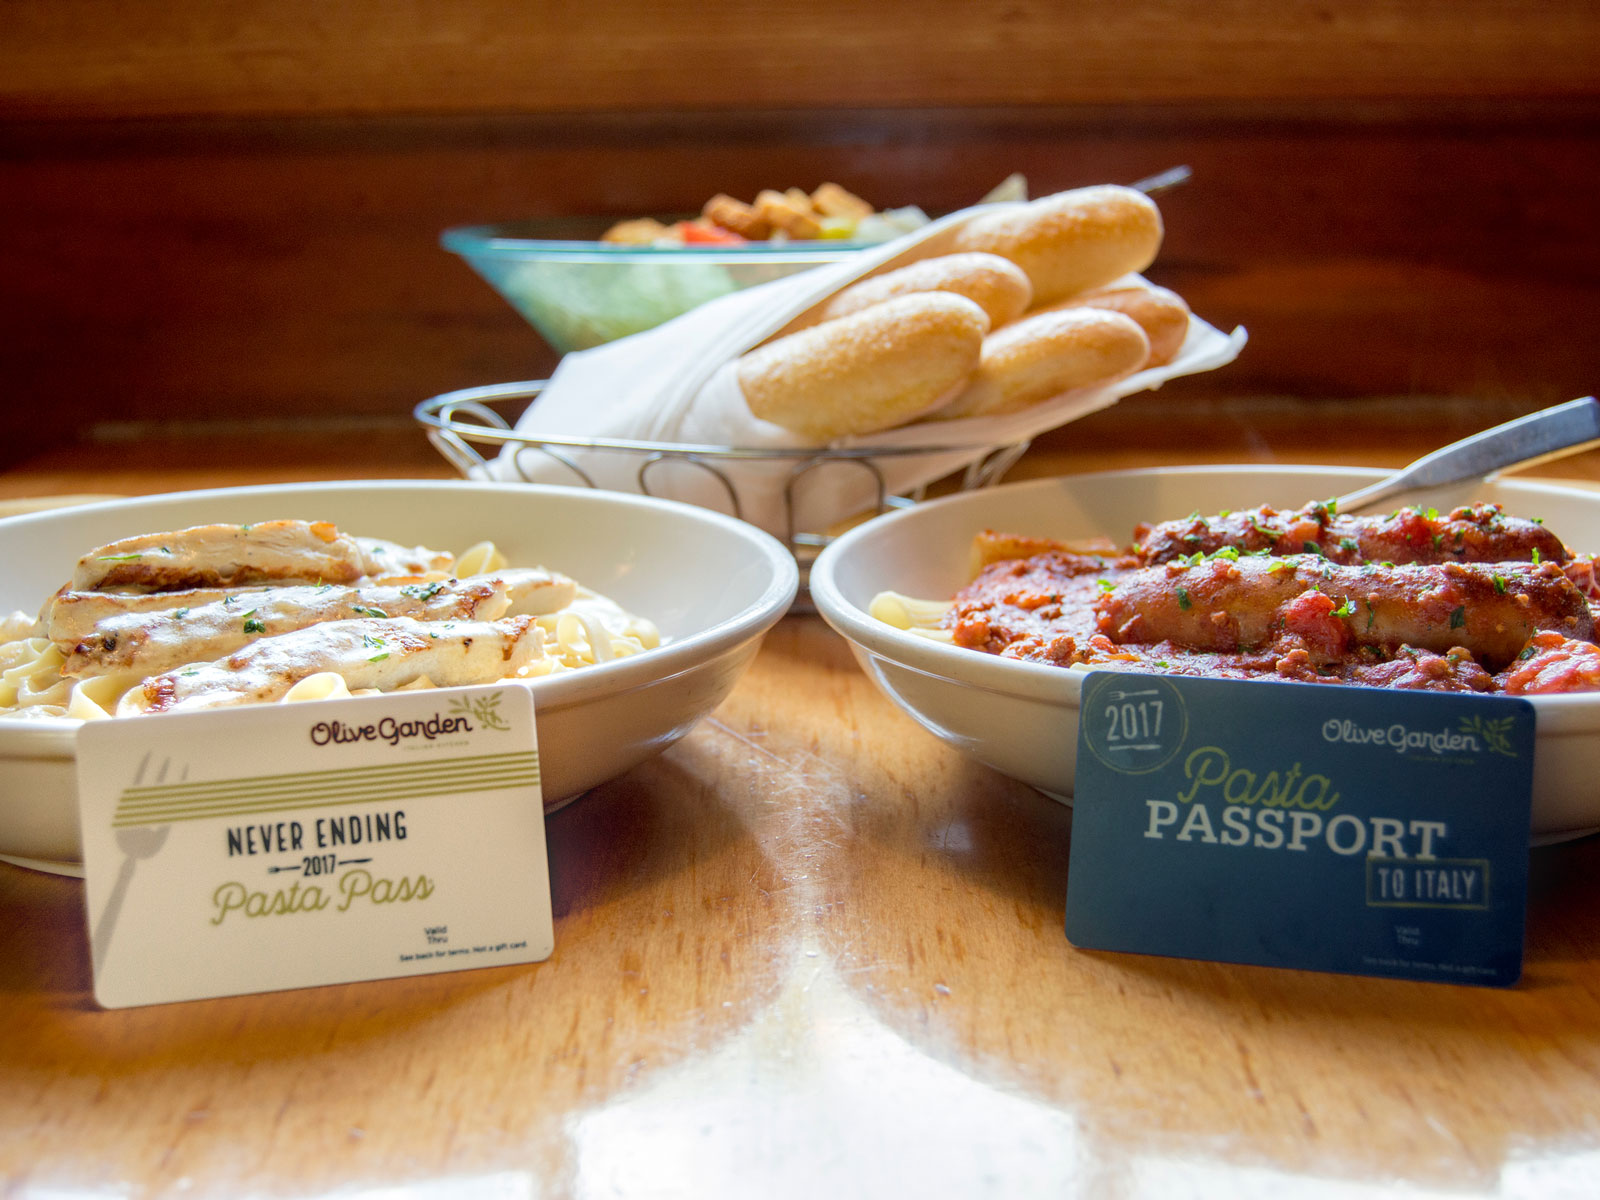 How to Score Olive Garden\'s Never Ending Pasta Pass and Get an All ...